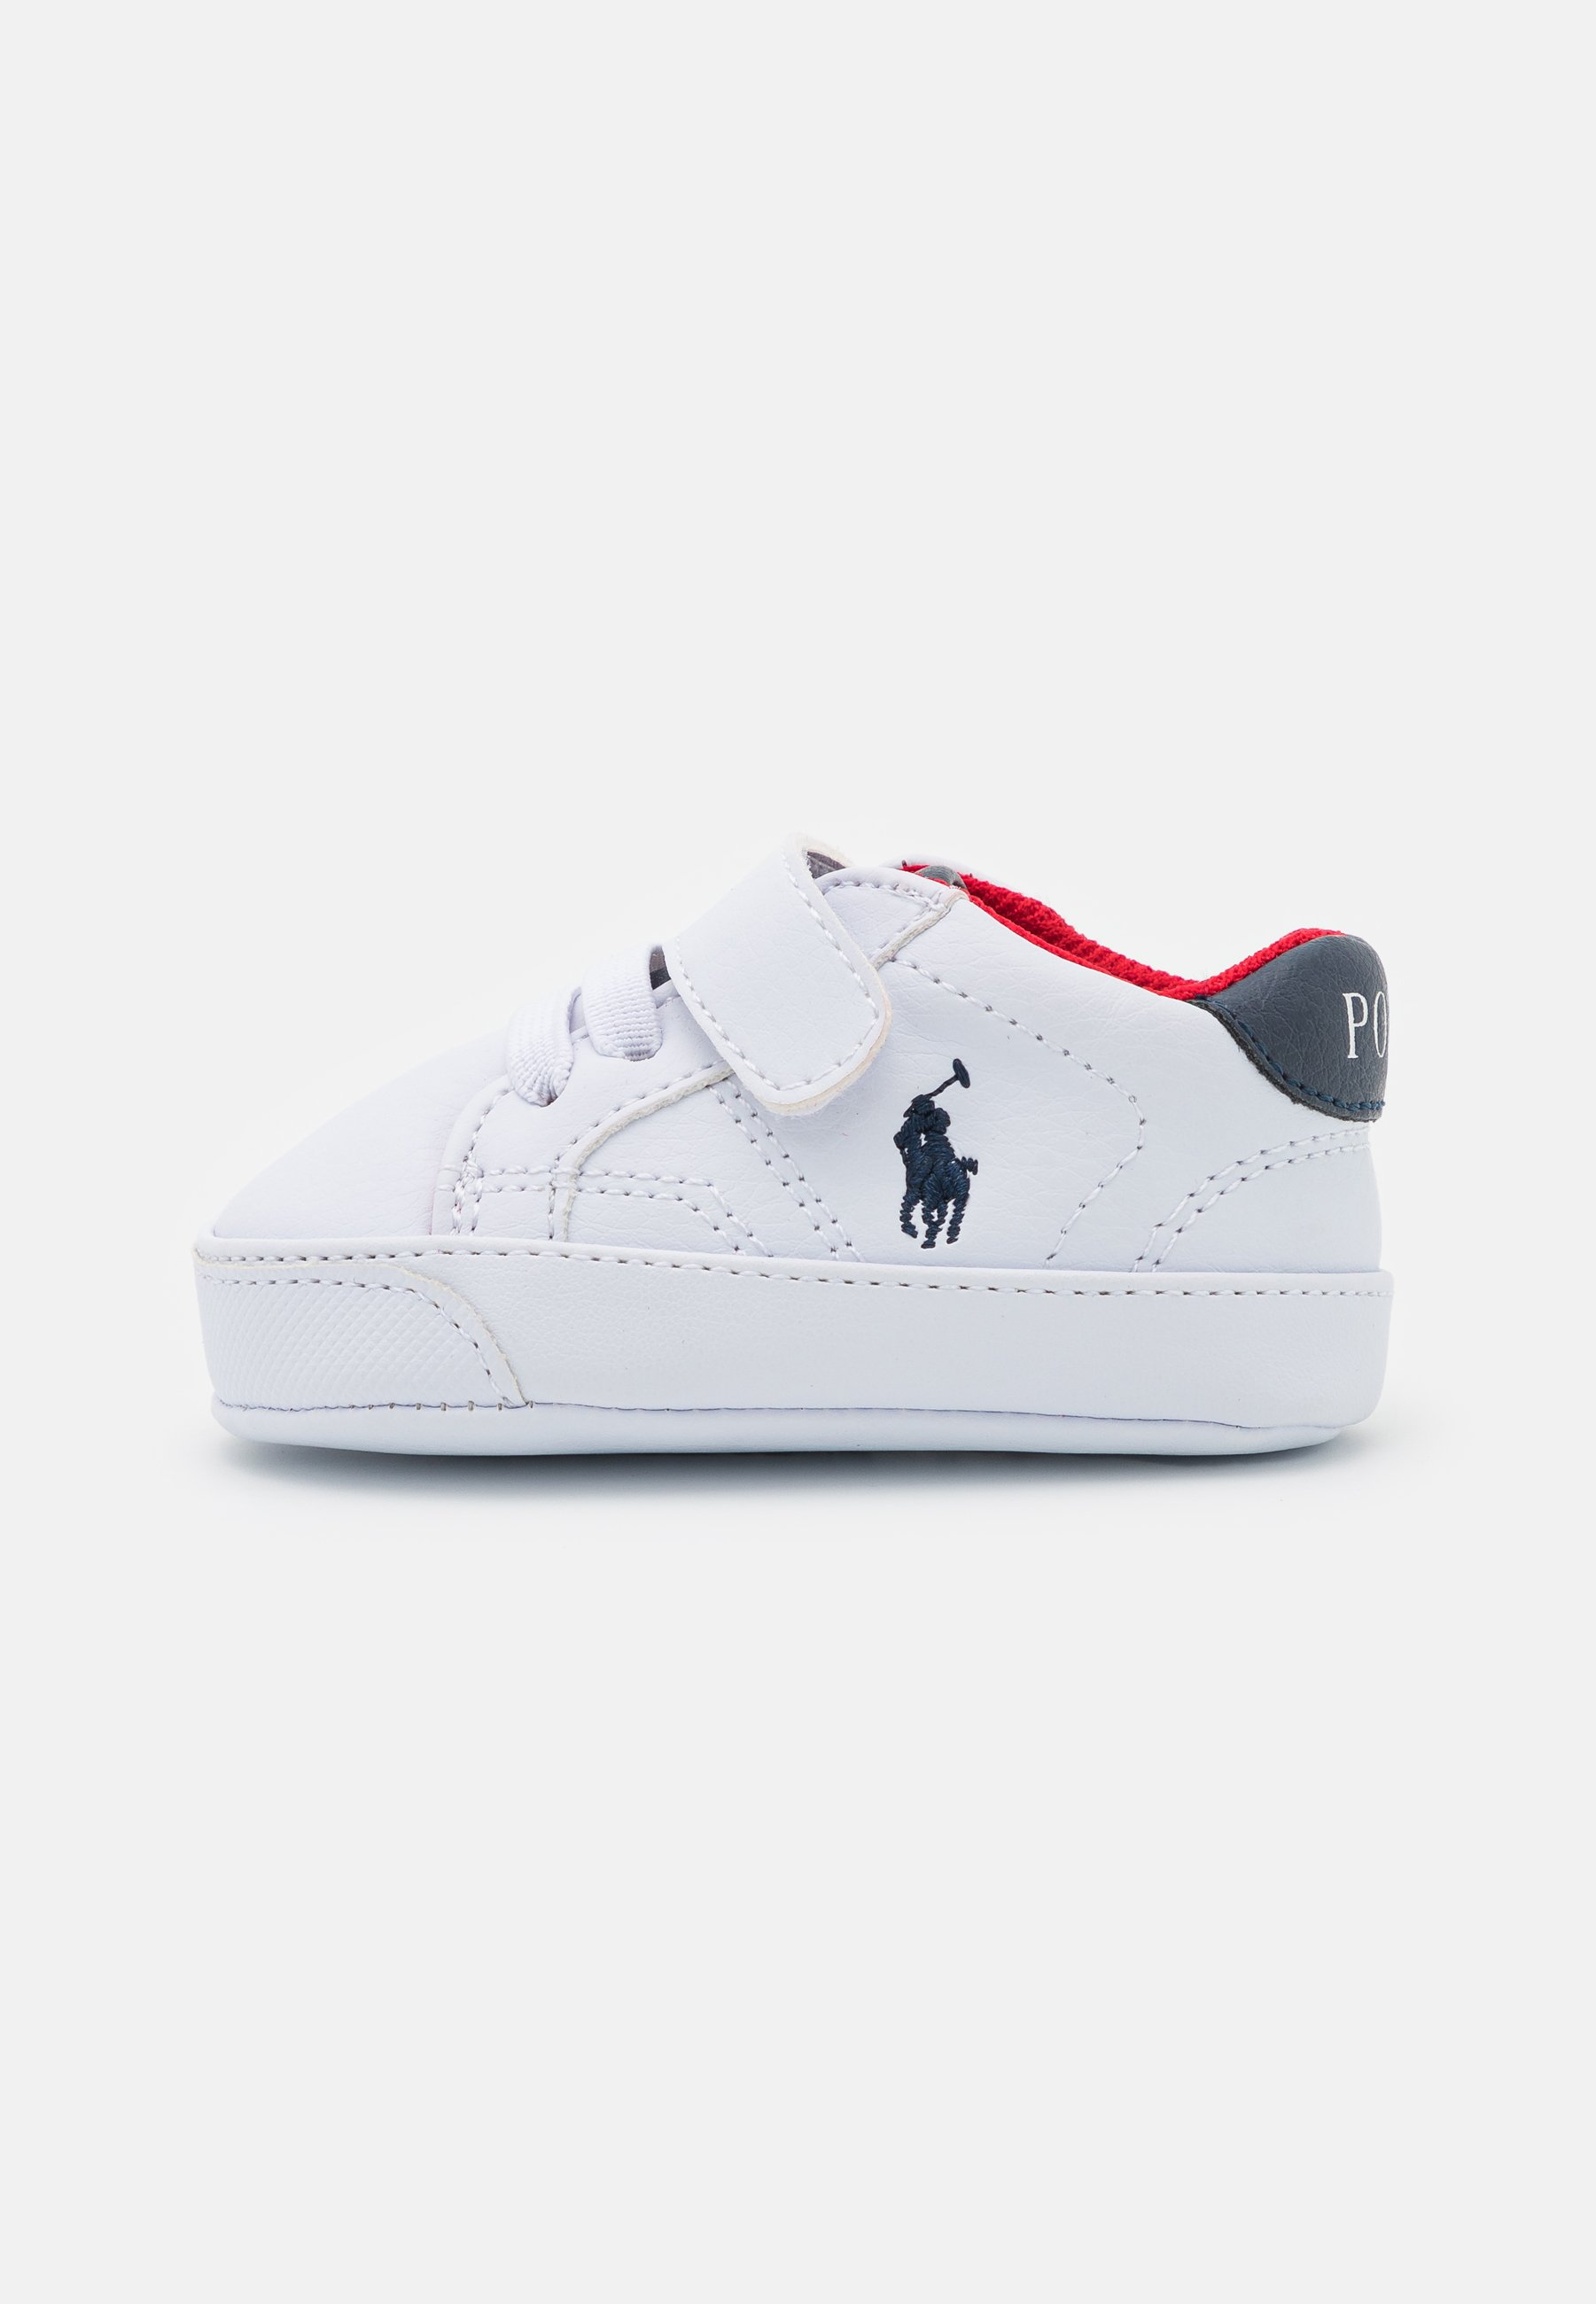 Kids THERON PSLAYETTE - First shoes - white tumbled/navy